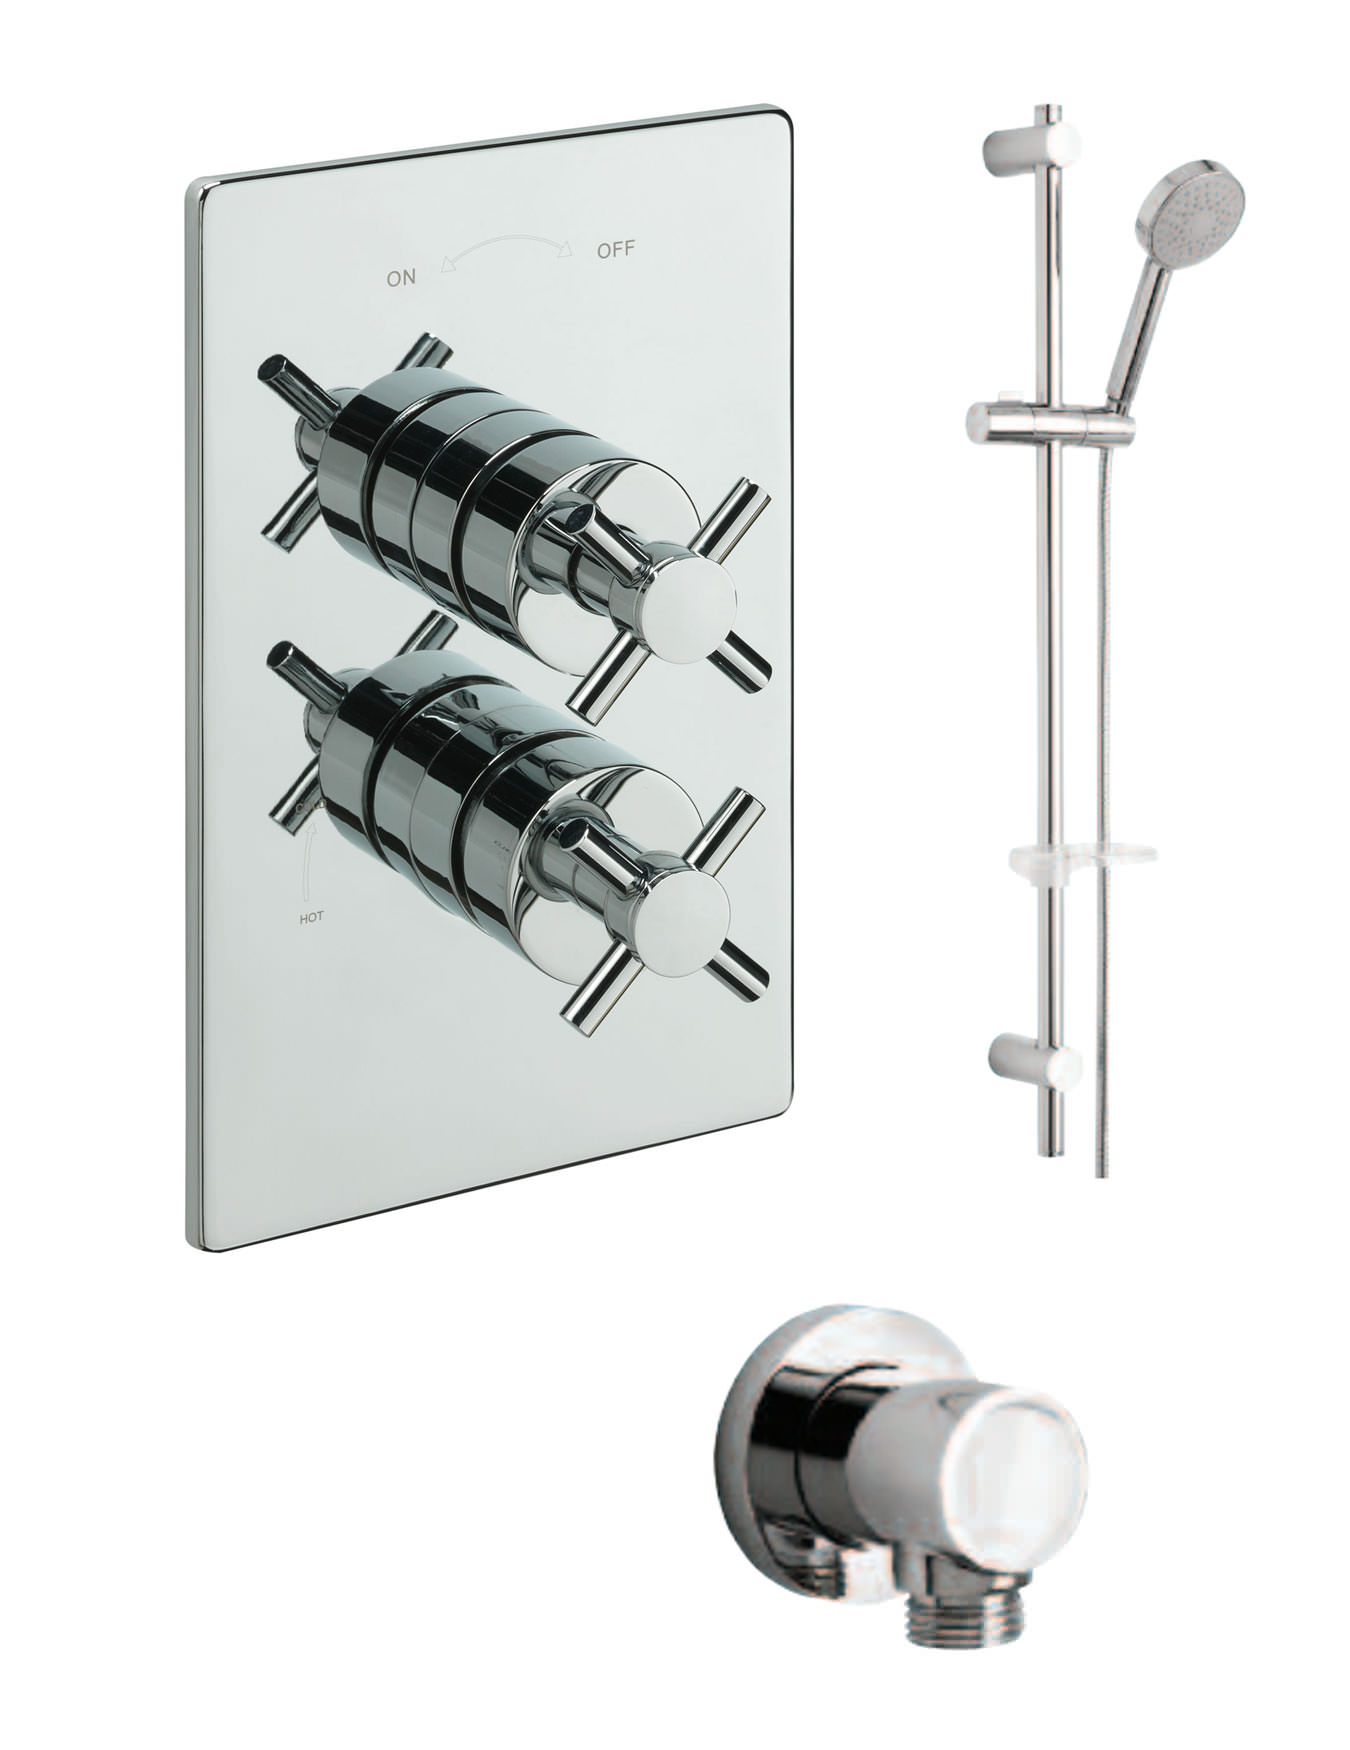 mirrors for the bathroom tre mercati crosshead concealed shower valve with shower set 19538